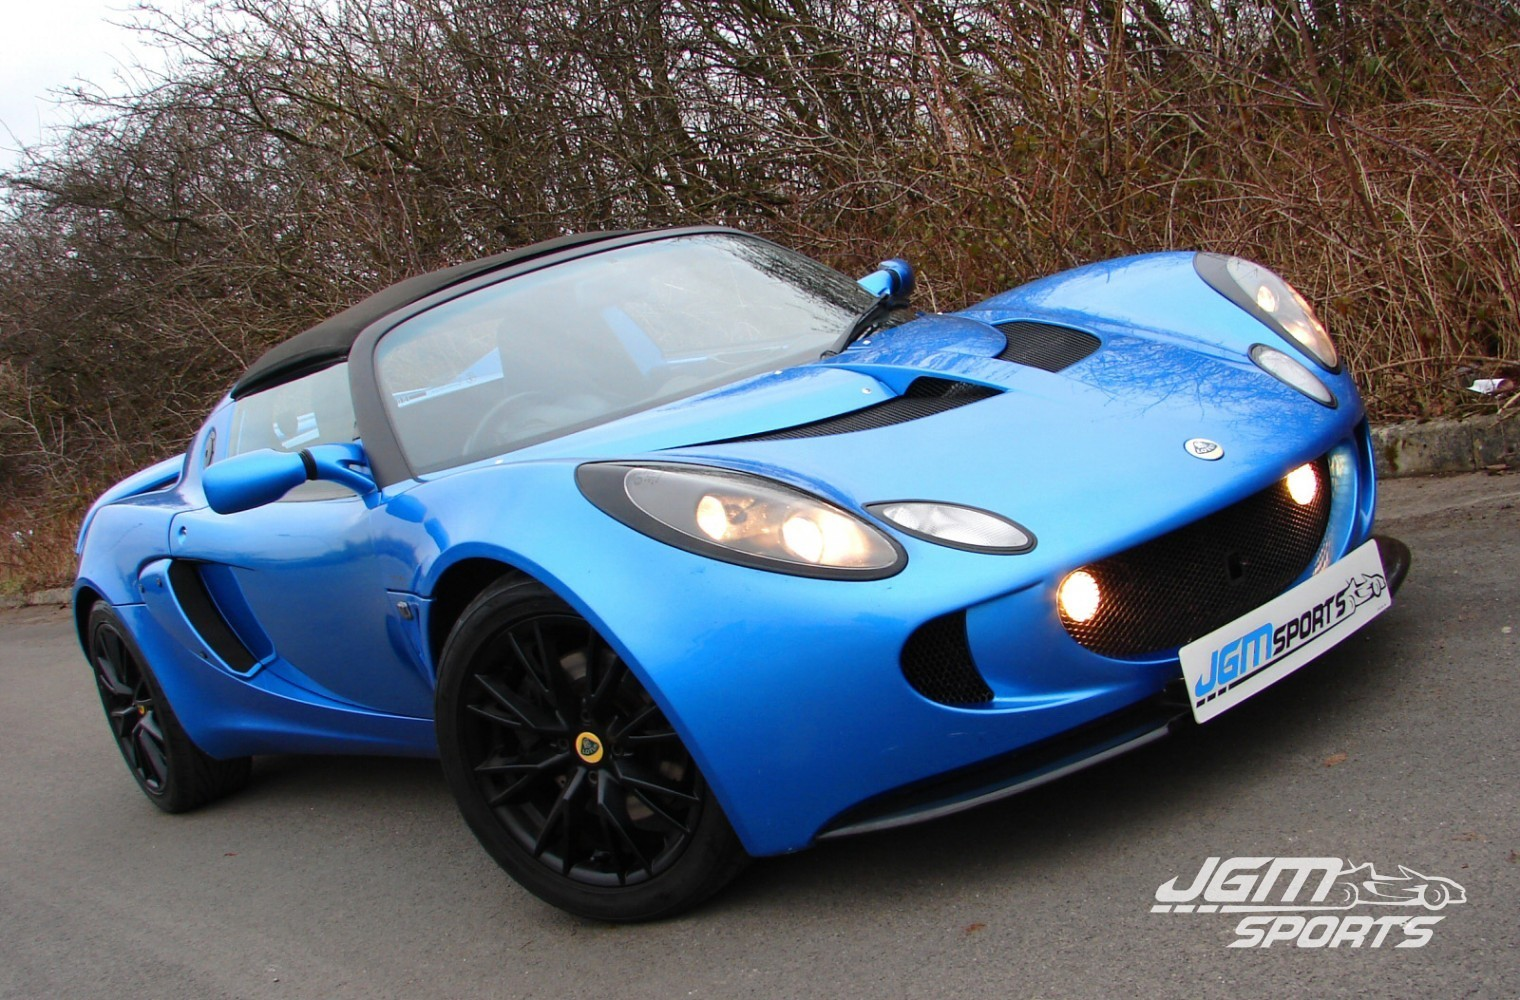 2002 S2 Lotus Elise 111s 160bhp Exige Front Clam And